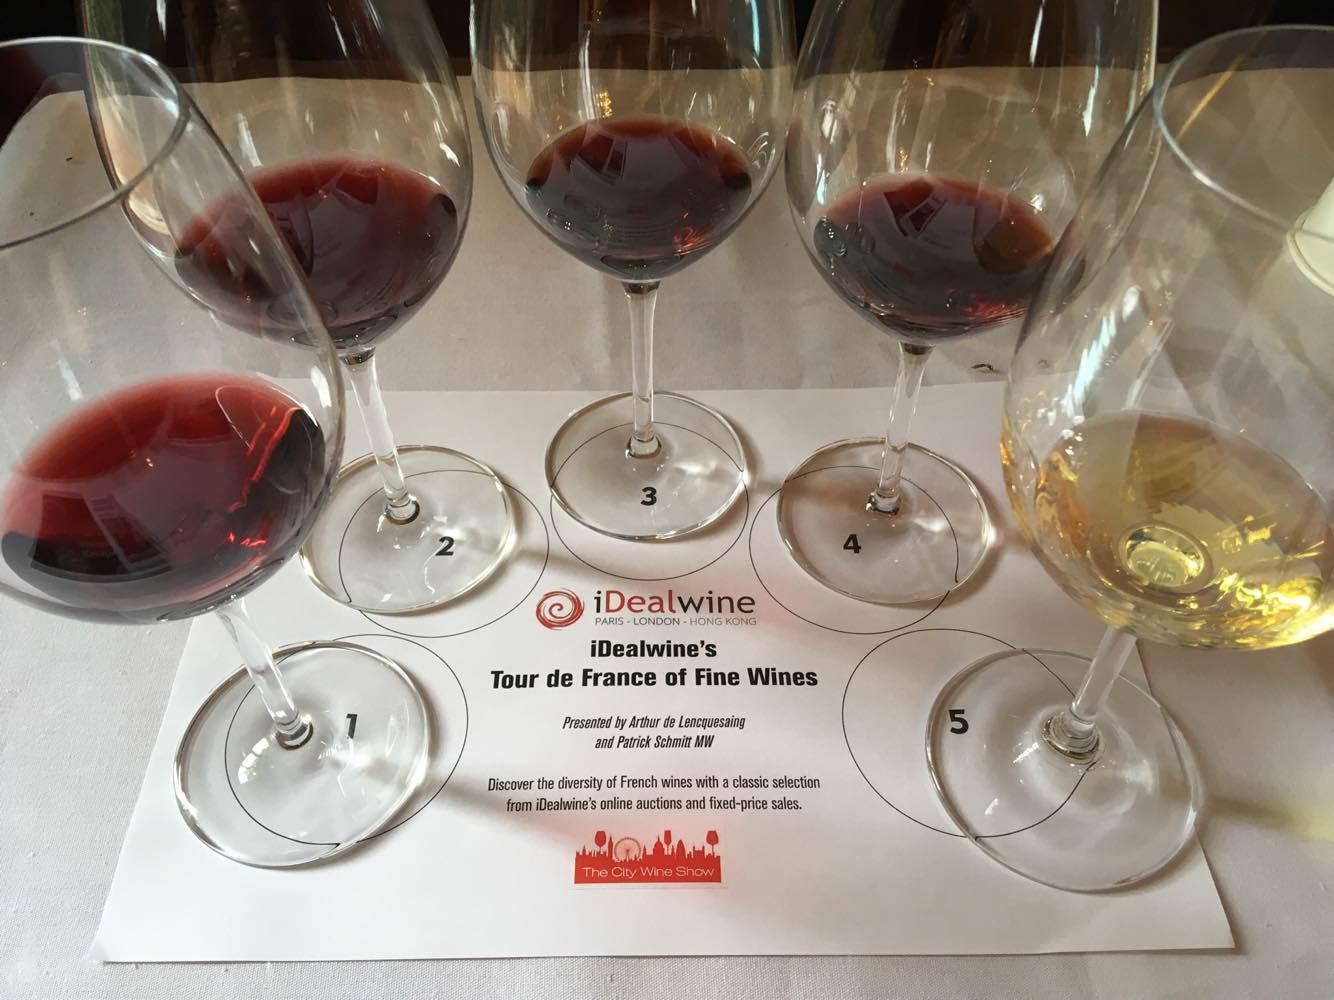 City Wine Show masterclass